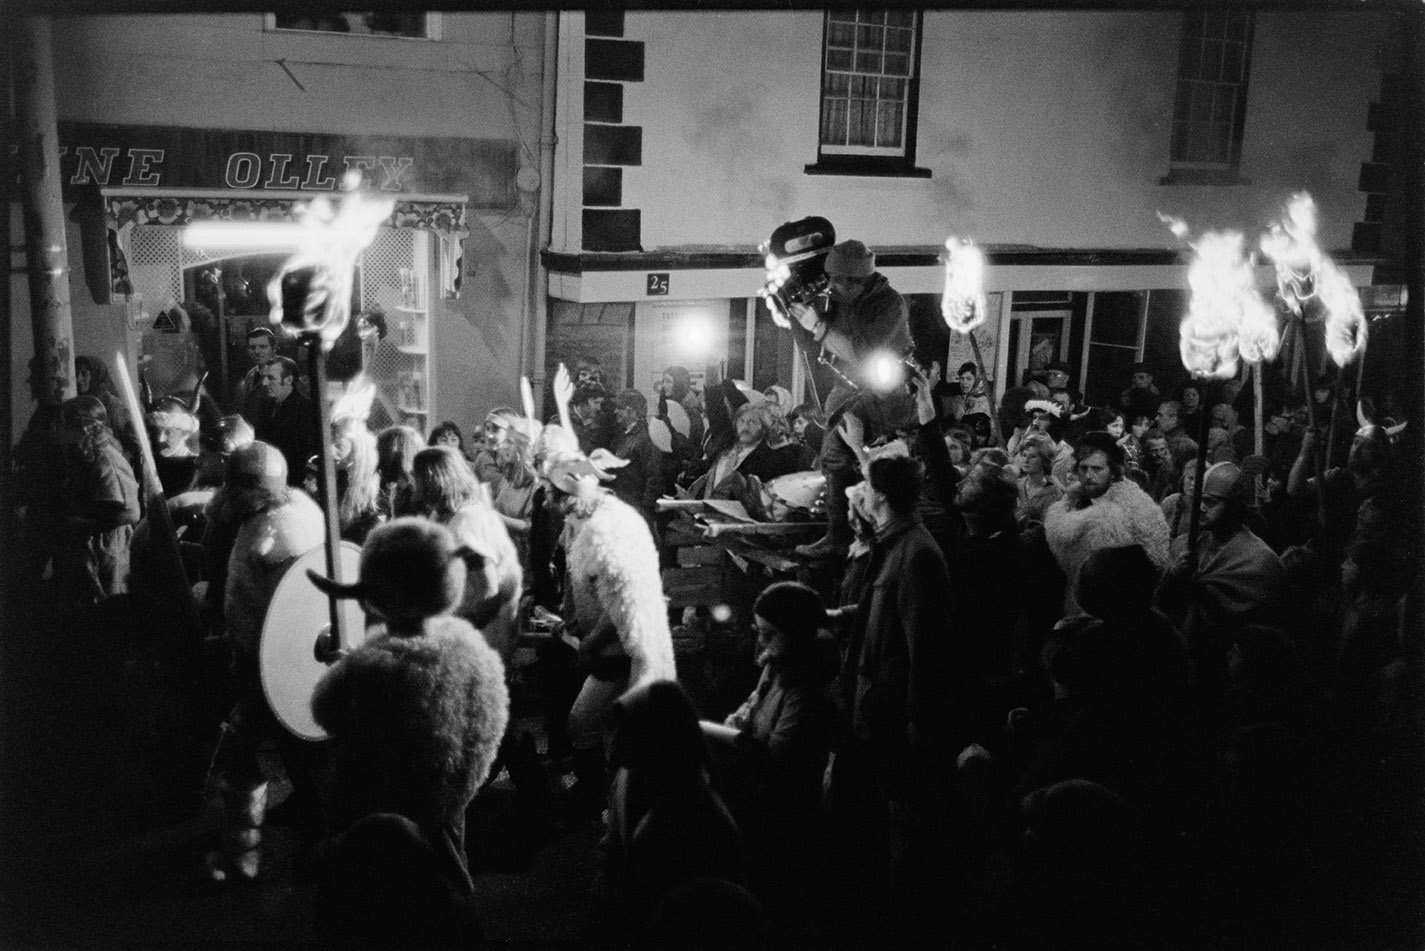 Cameraman held aloft - filming events, Torrington Fair, 2 November 1974